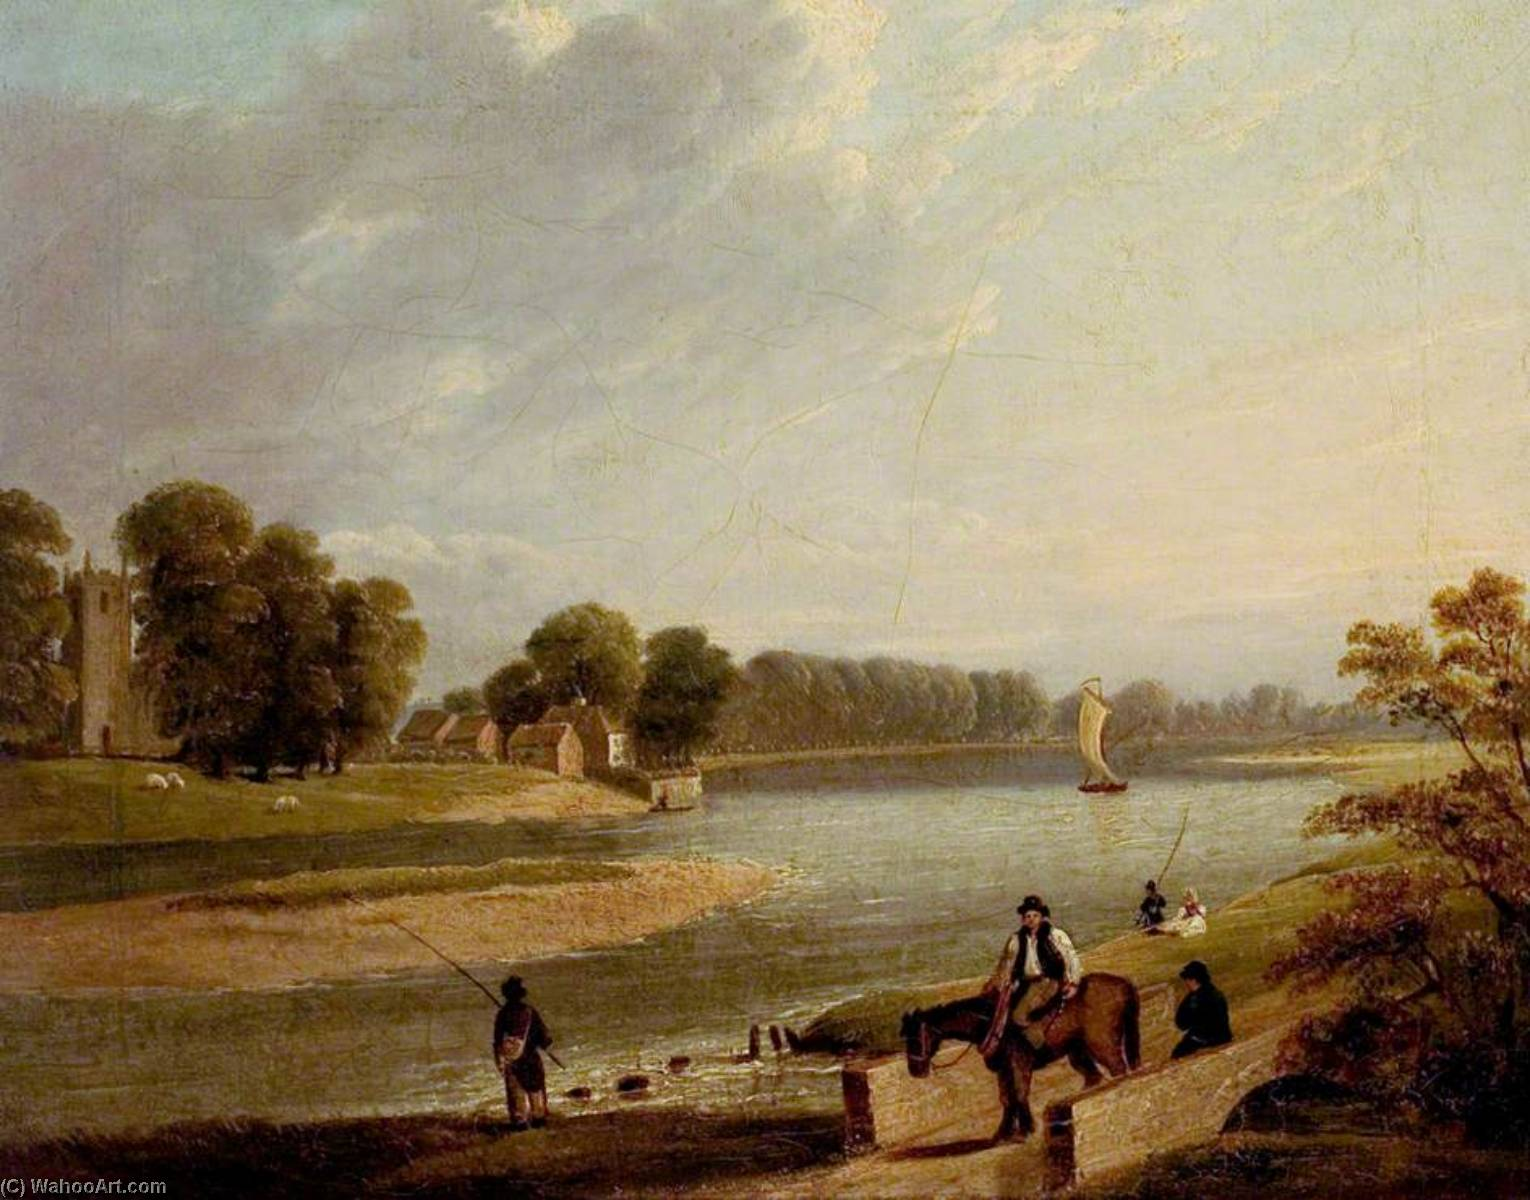 Order Oil Painting : The Trent at Wilford, 1840 by Thomas Barber | WahooArt.com